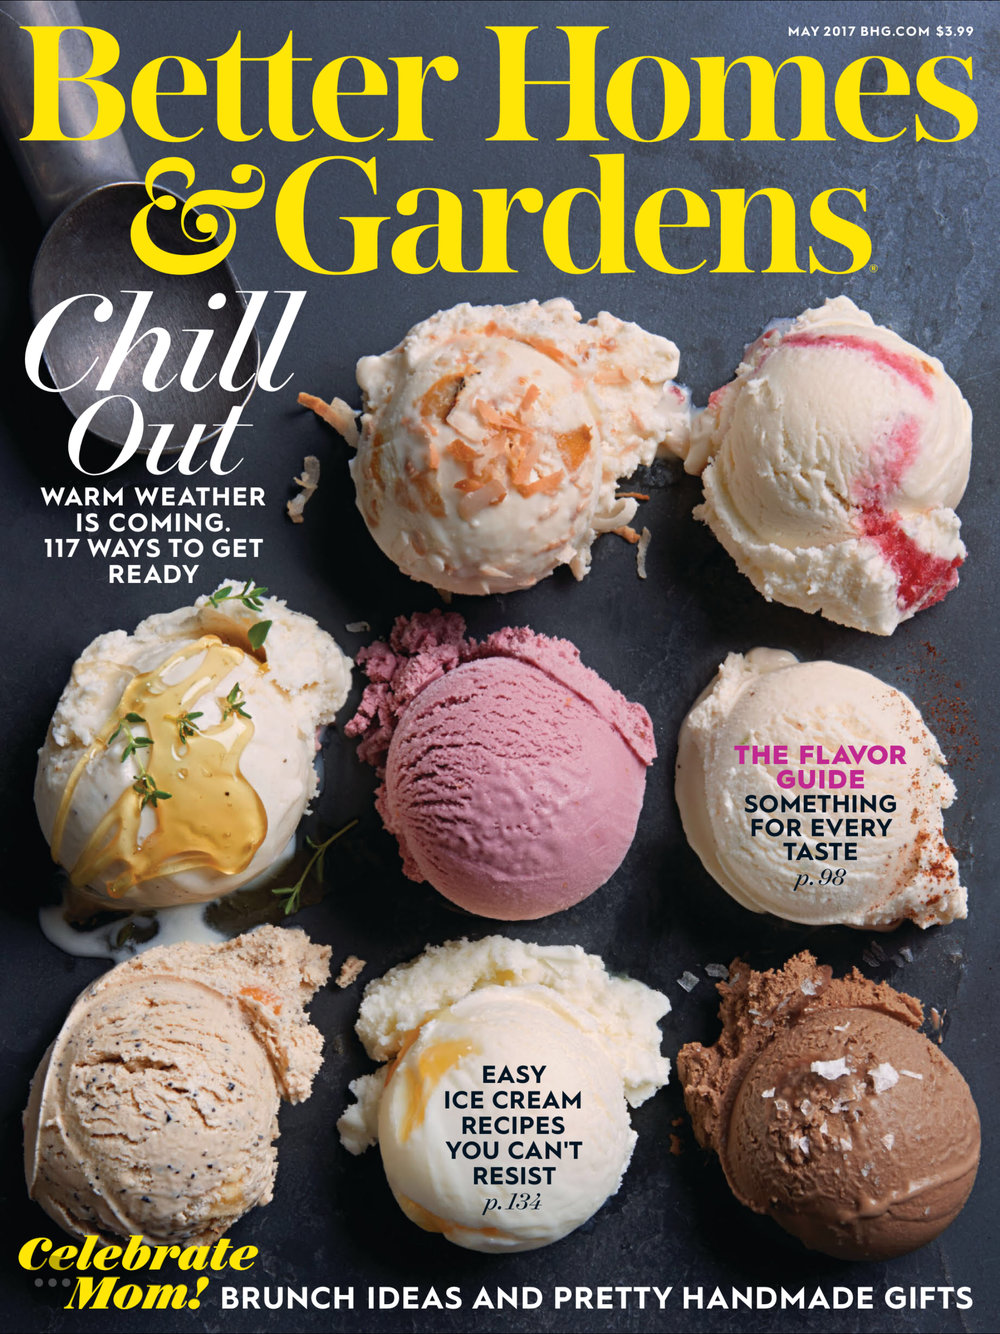 Better Homes & Gardens May 2017